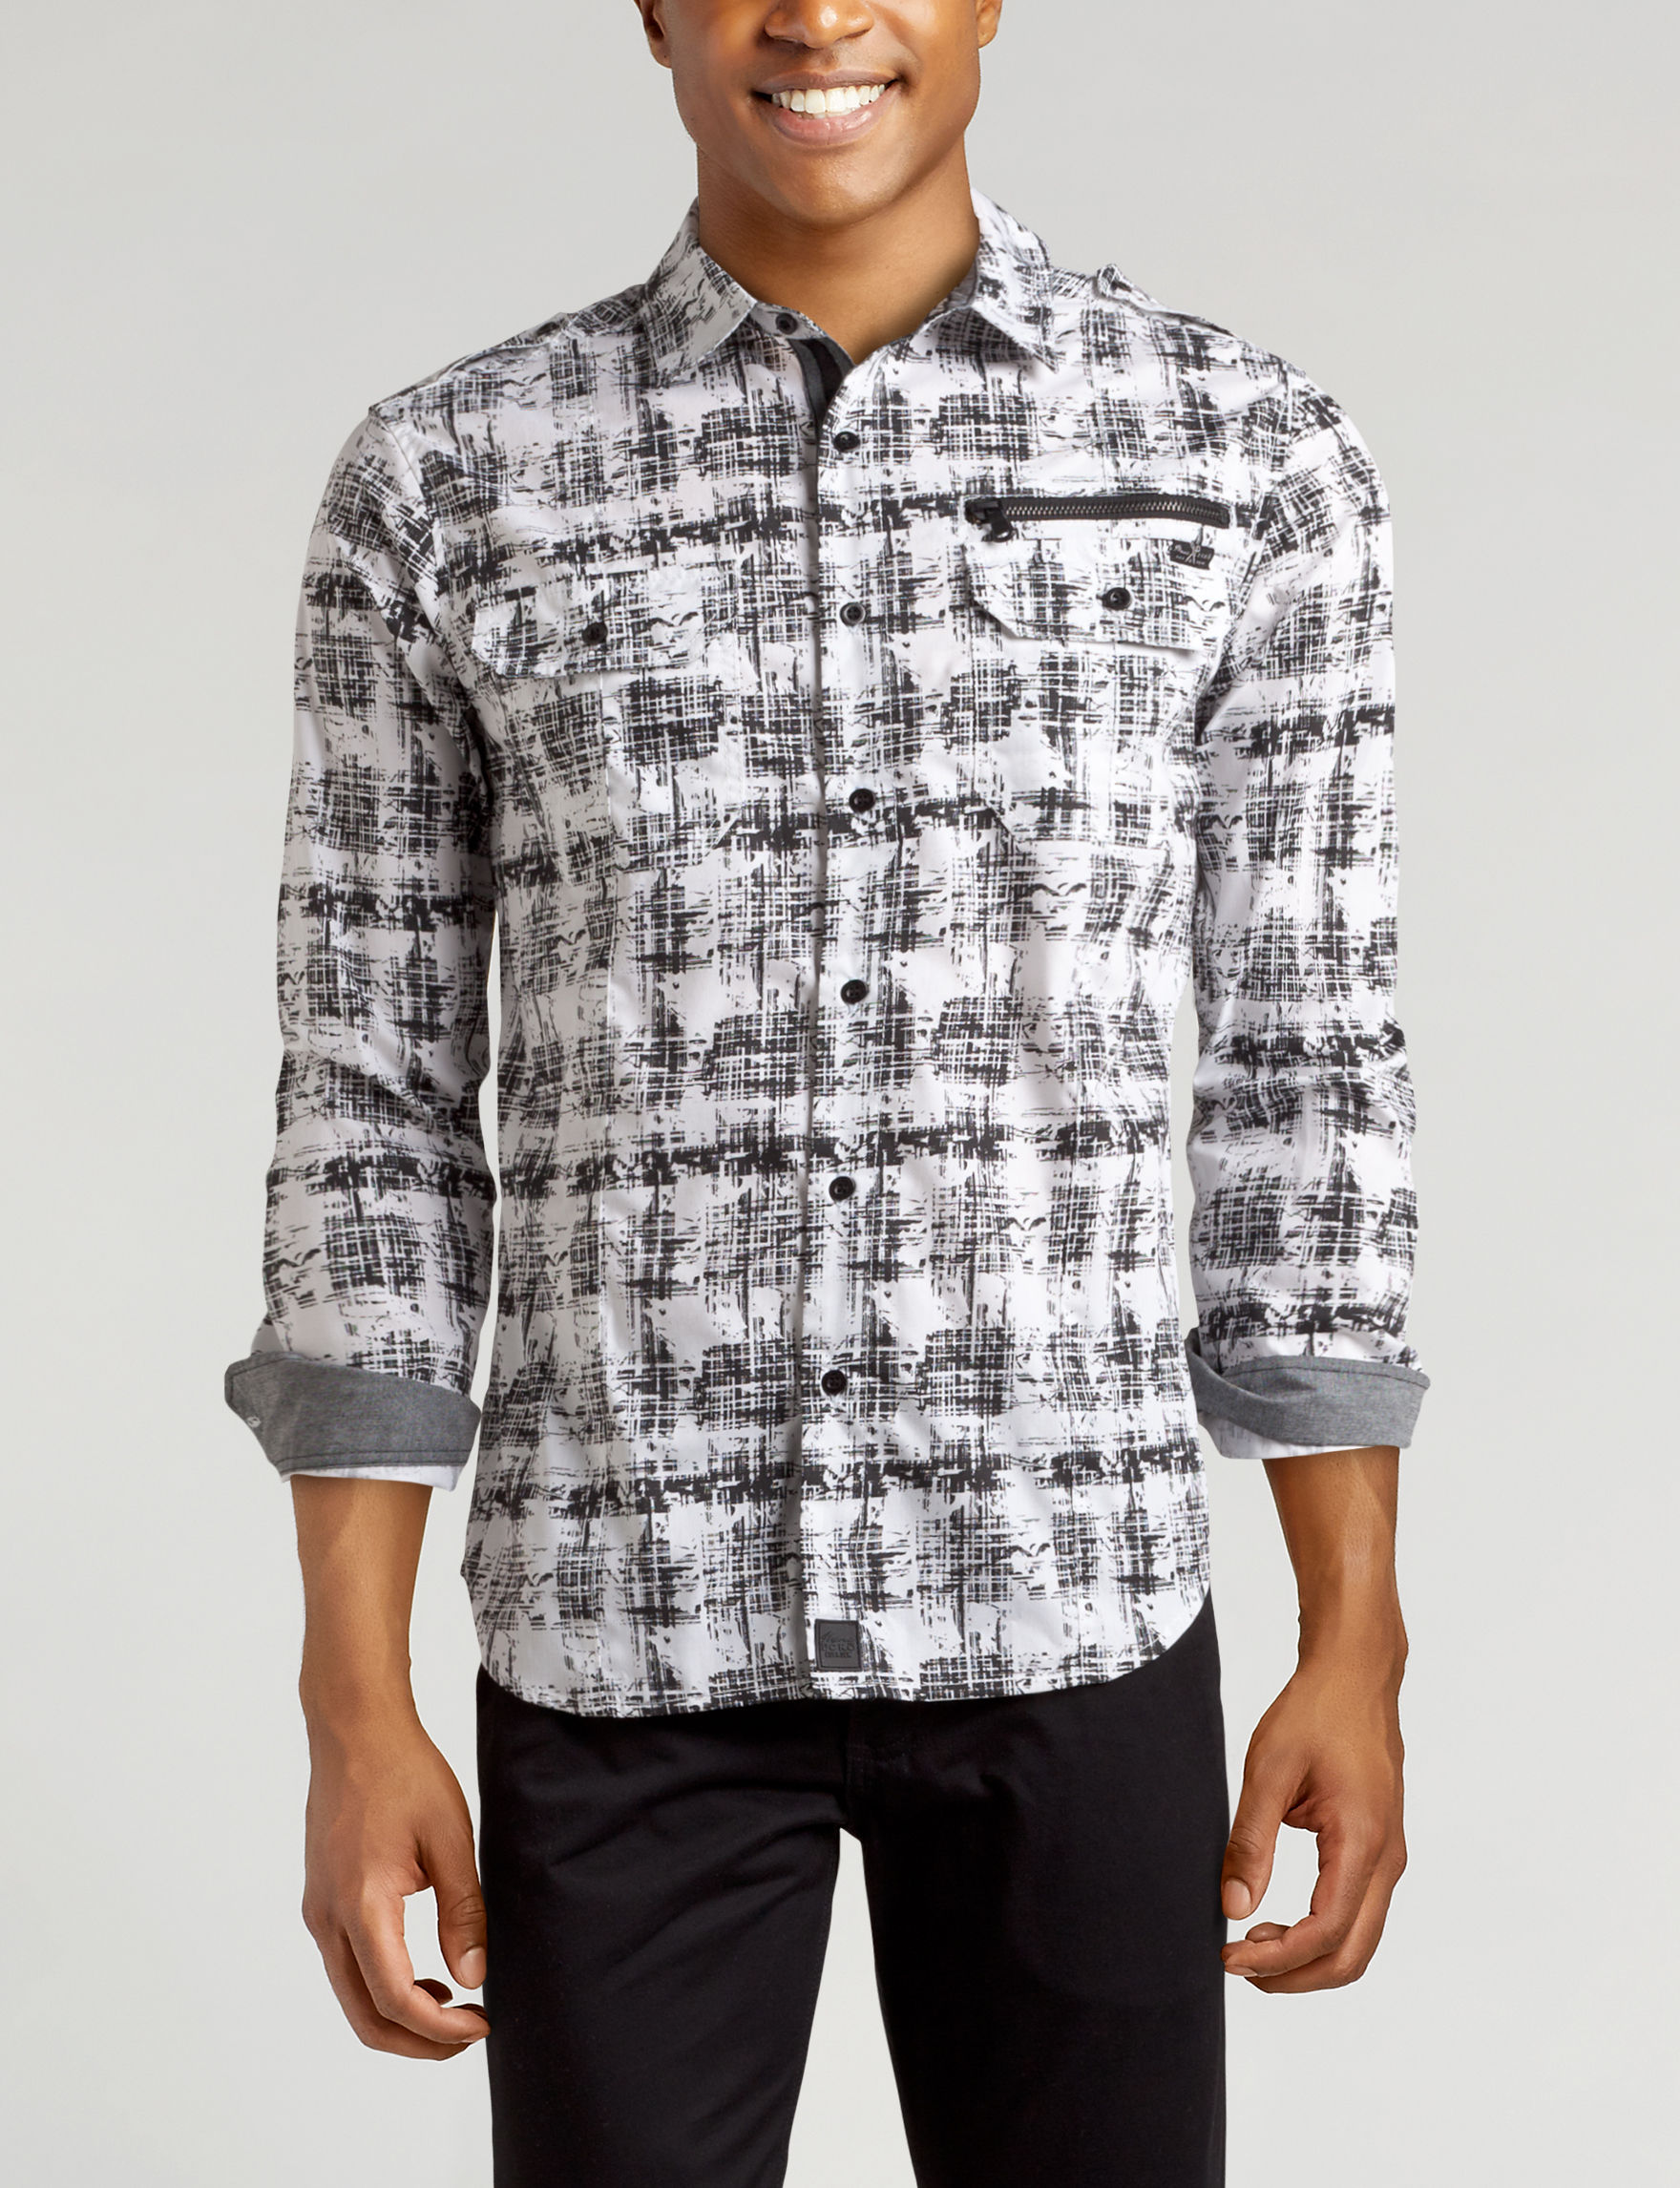 Marc Ecko White / Black Casual Button Down Shirts